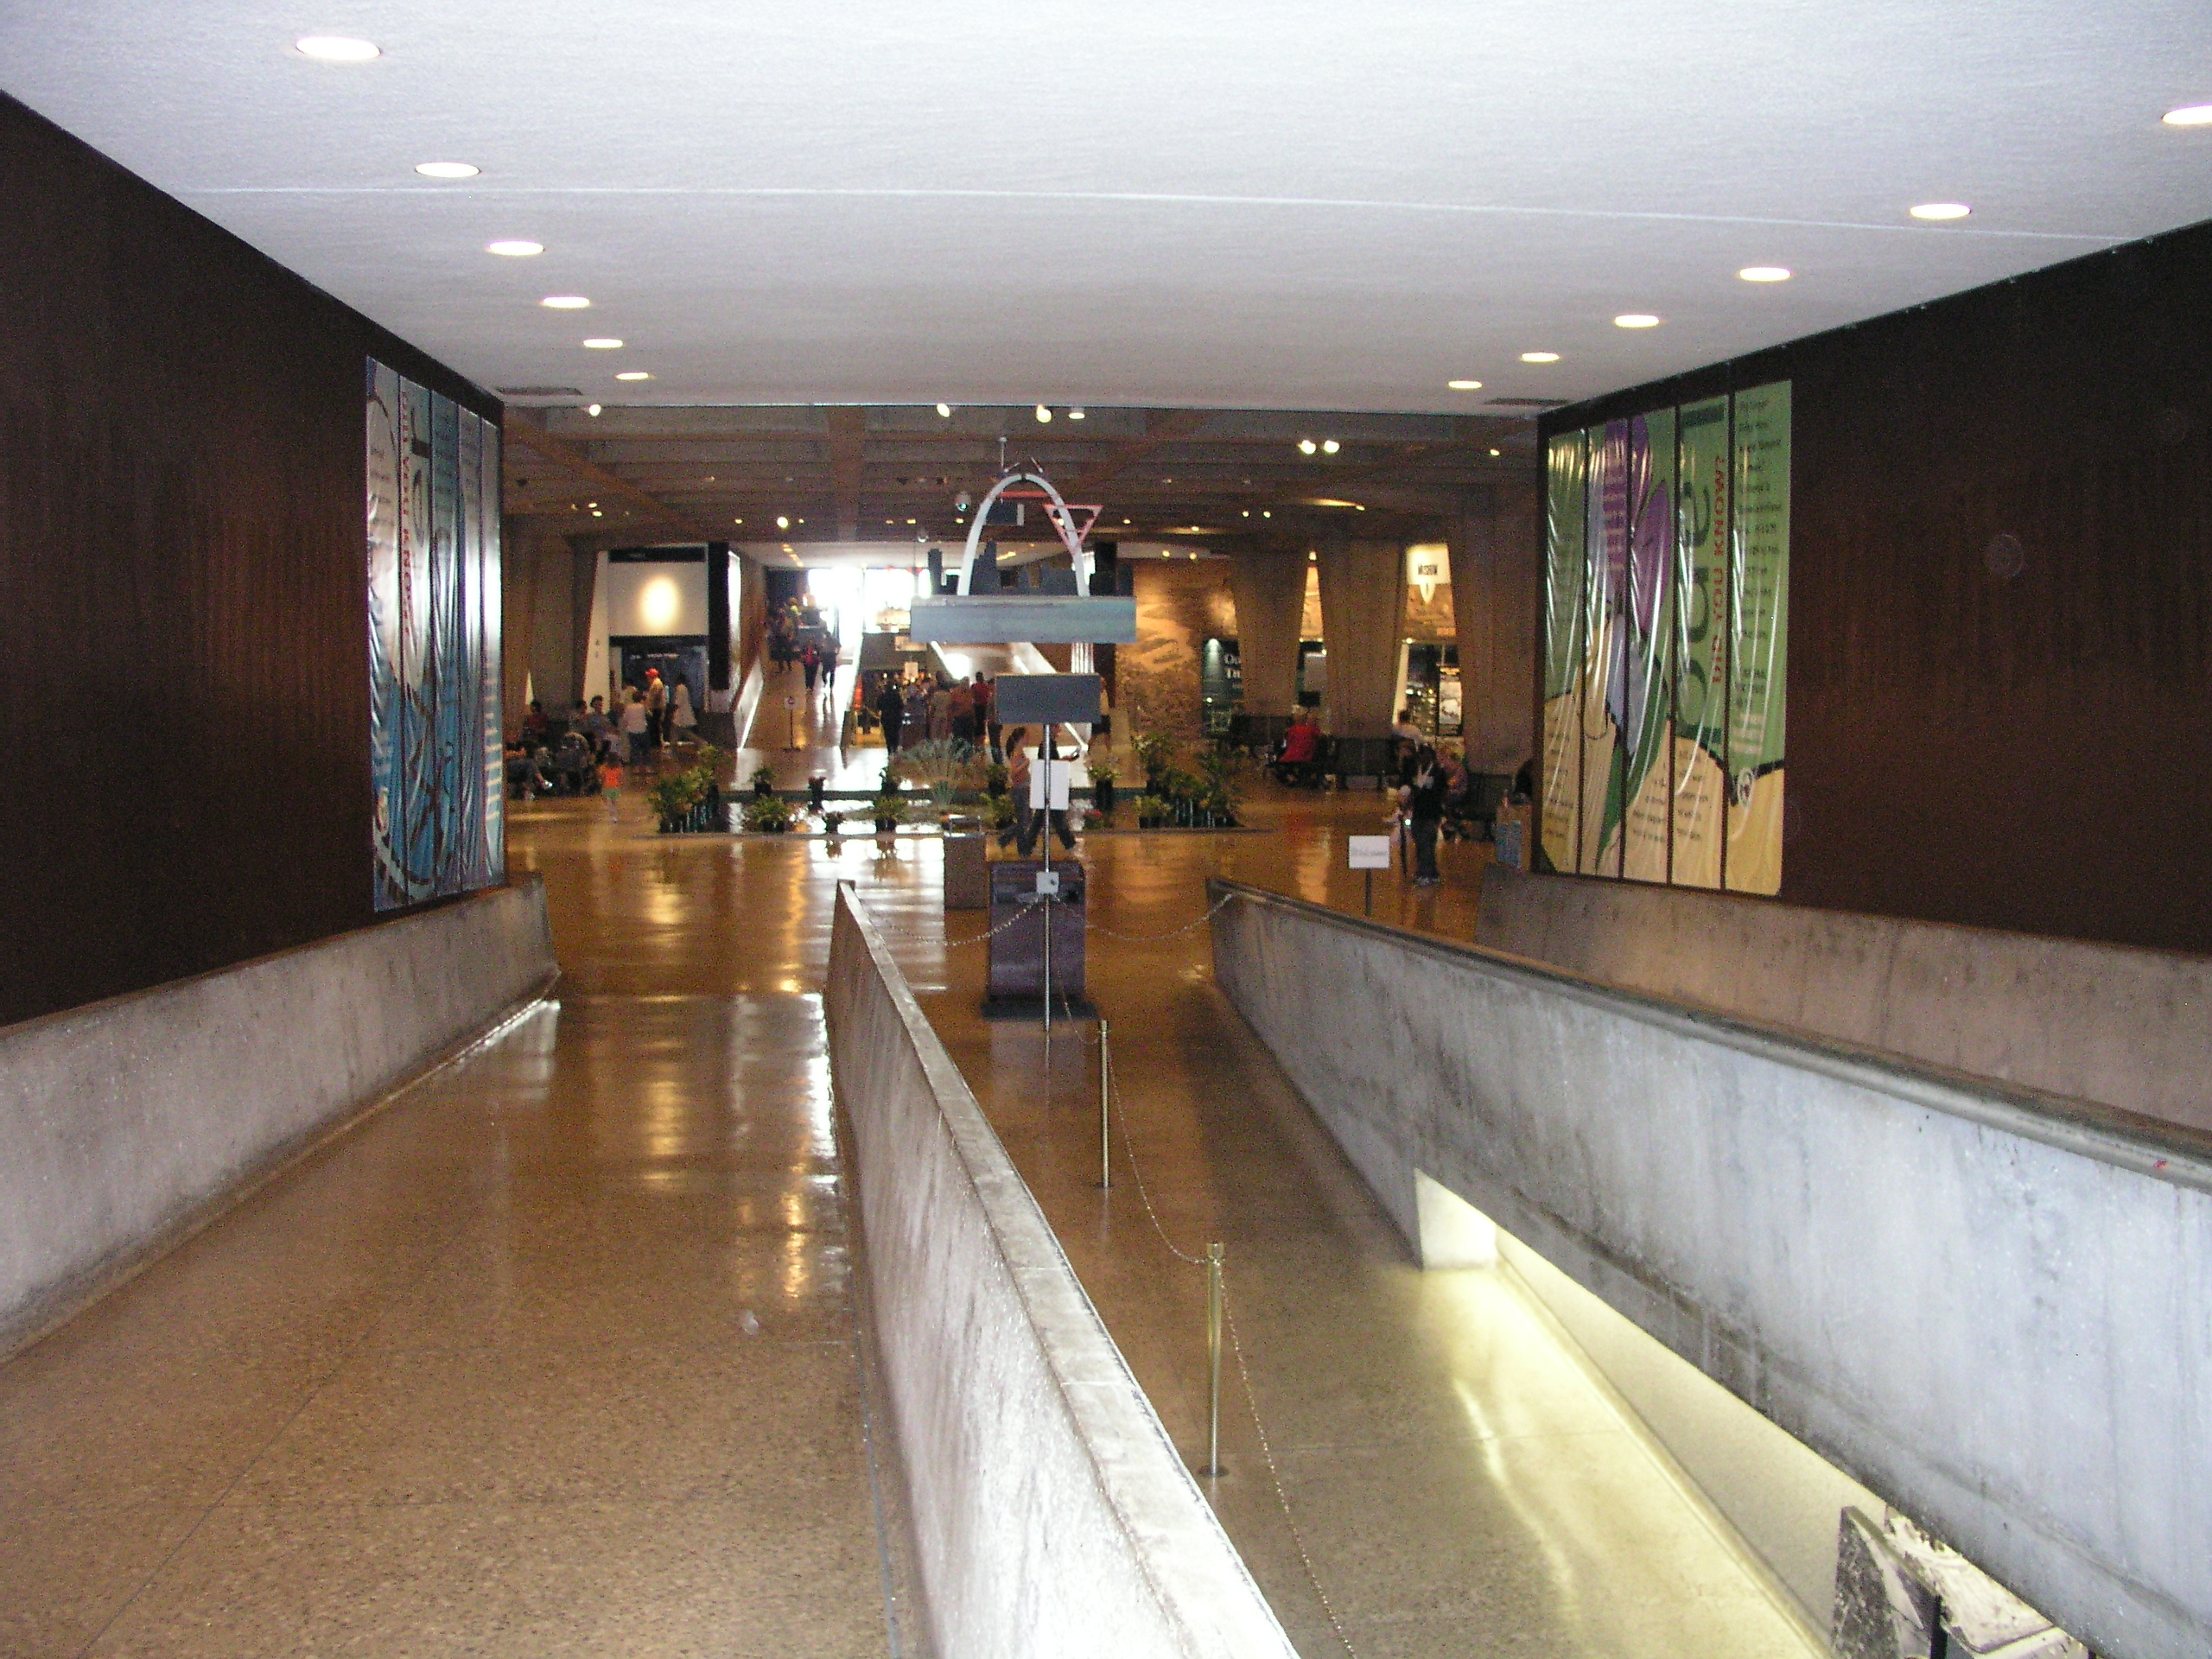 File:Gateway Arch visitors center - Wikimedia Commons